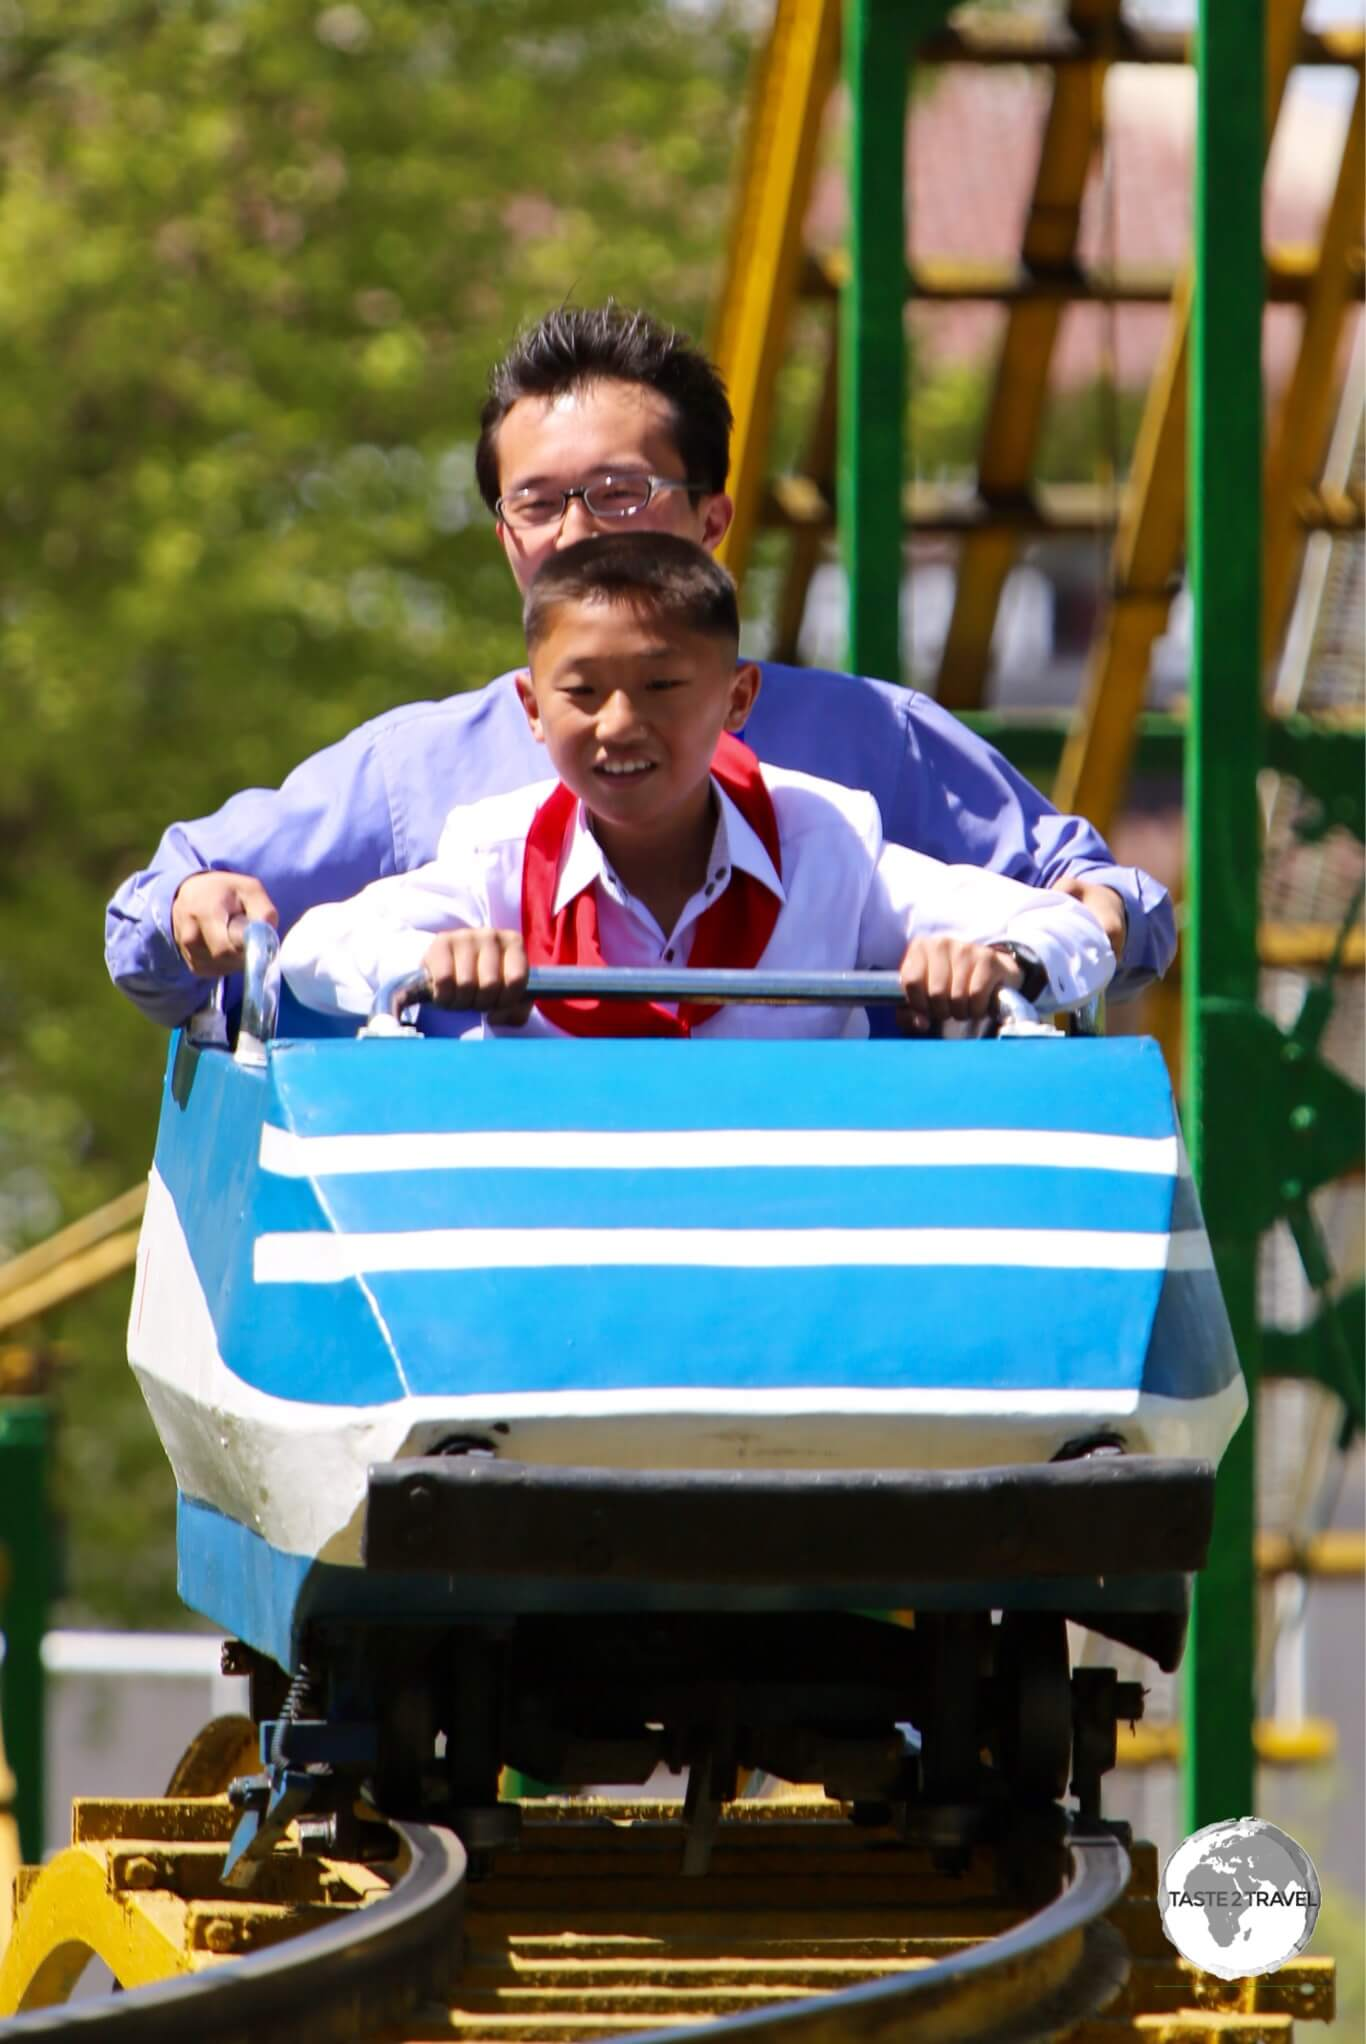 Roller coaster ride at Mt Taesong Amusement park on a busy May Day. All rides are free.